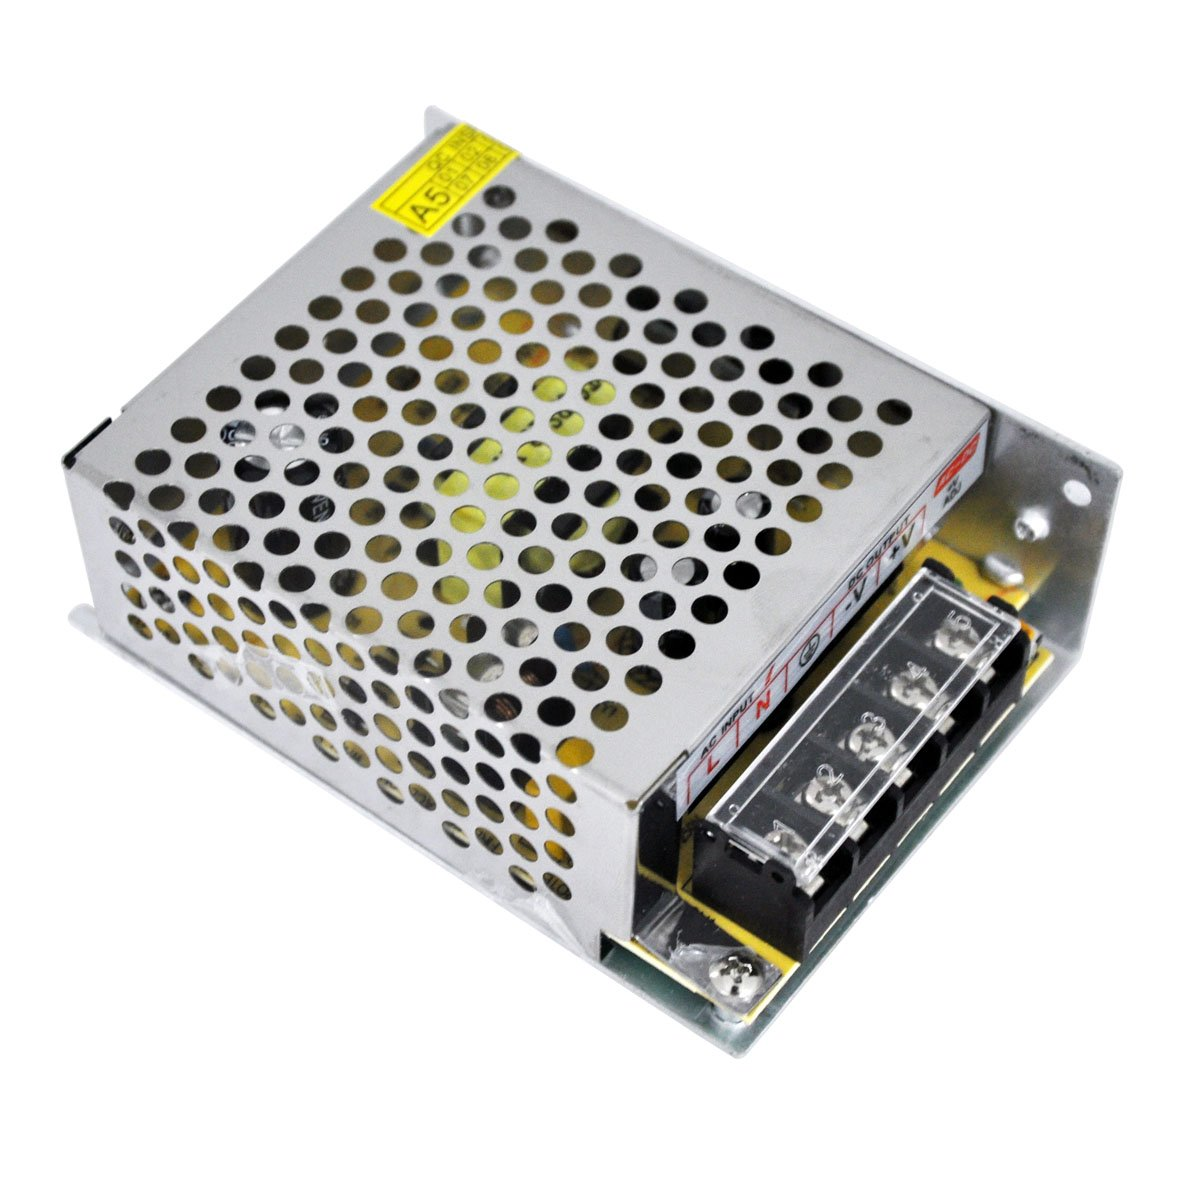 OLSUS AC 85~265V to DC 12V 4A 48W Indoor Switching Power Supply for LED Strip for DIY